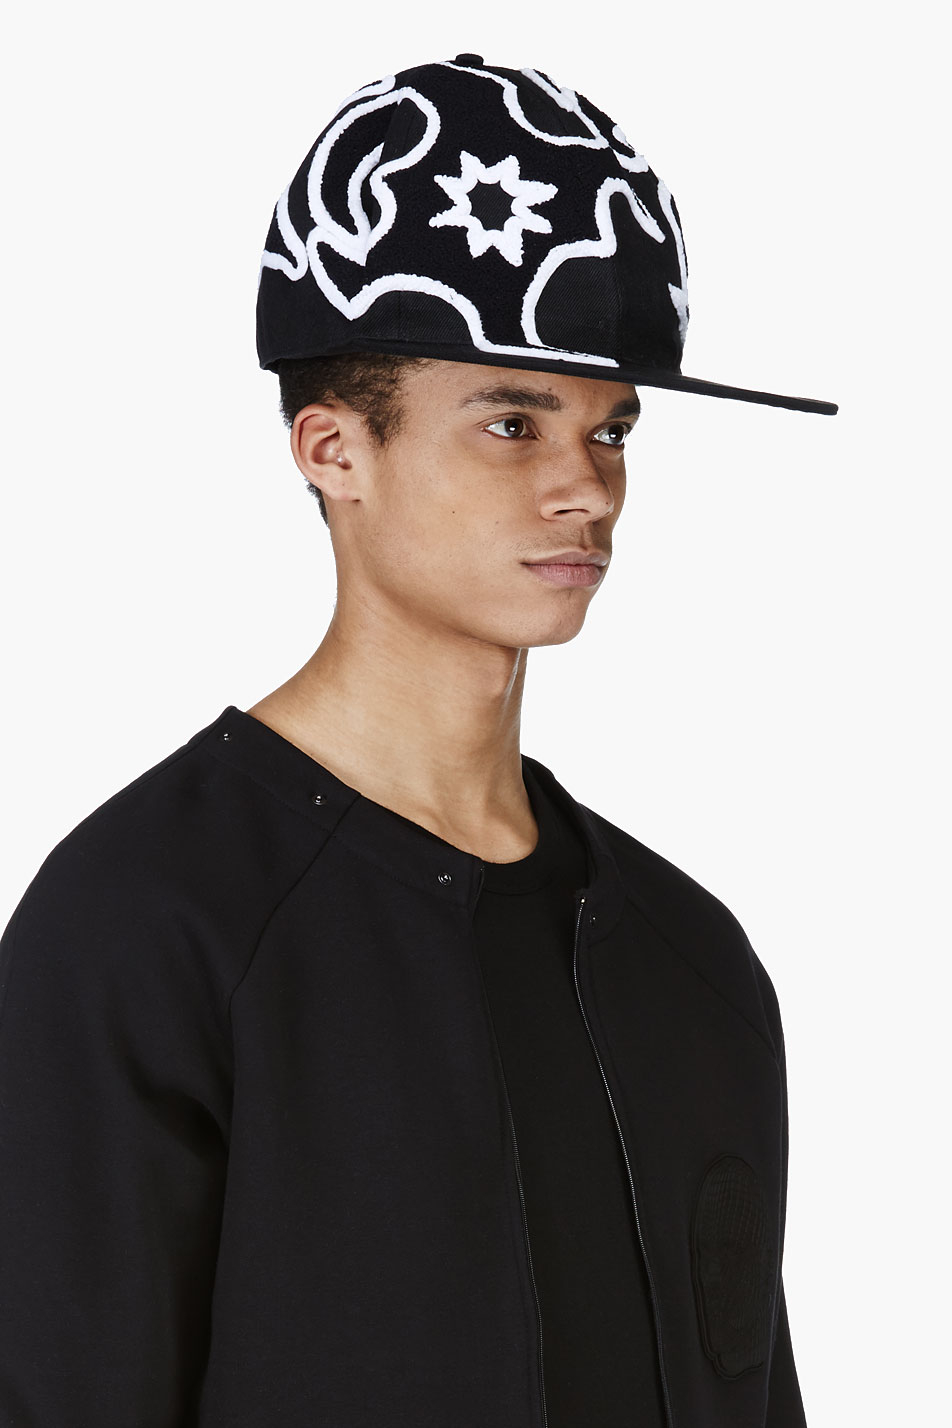 Lyst - KTZ Black Oversize Tattoo Toweling Oversize Cap in Black for Men a5a3b20a3fc